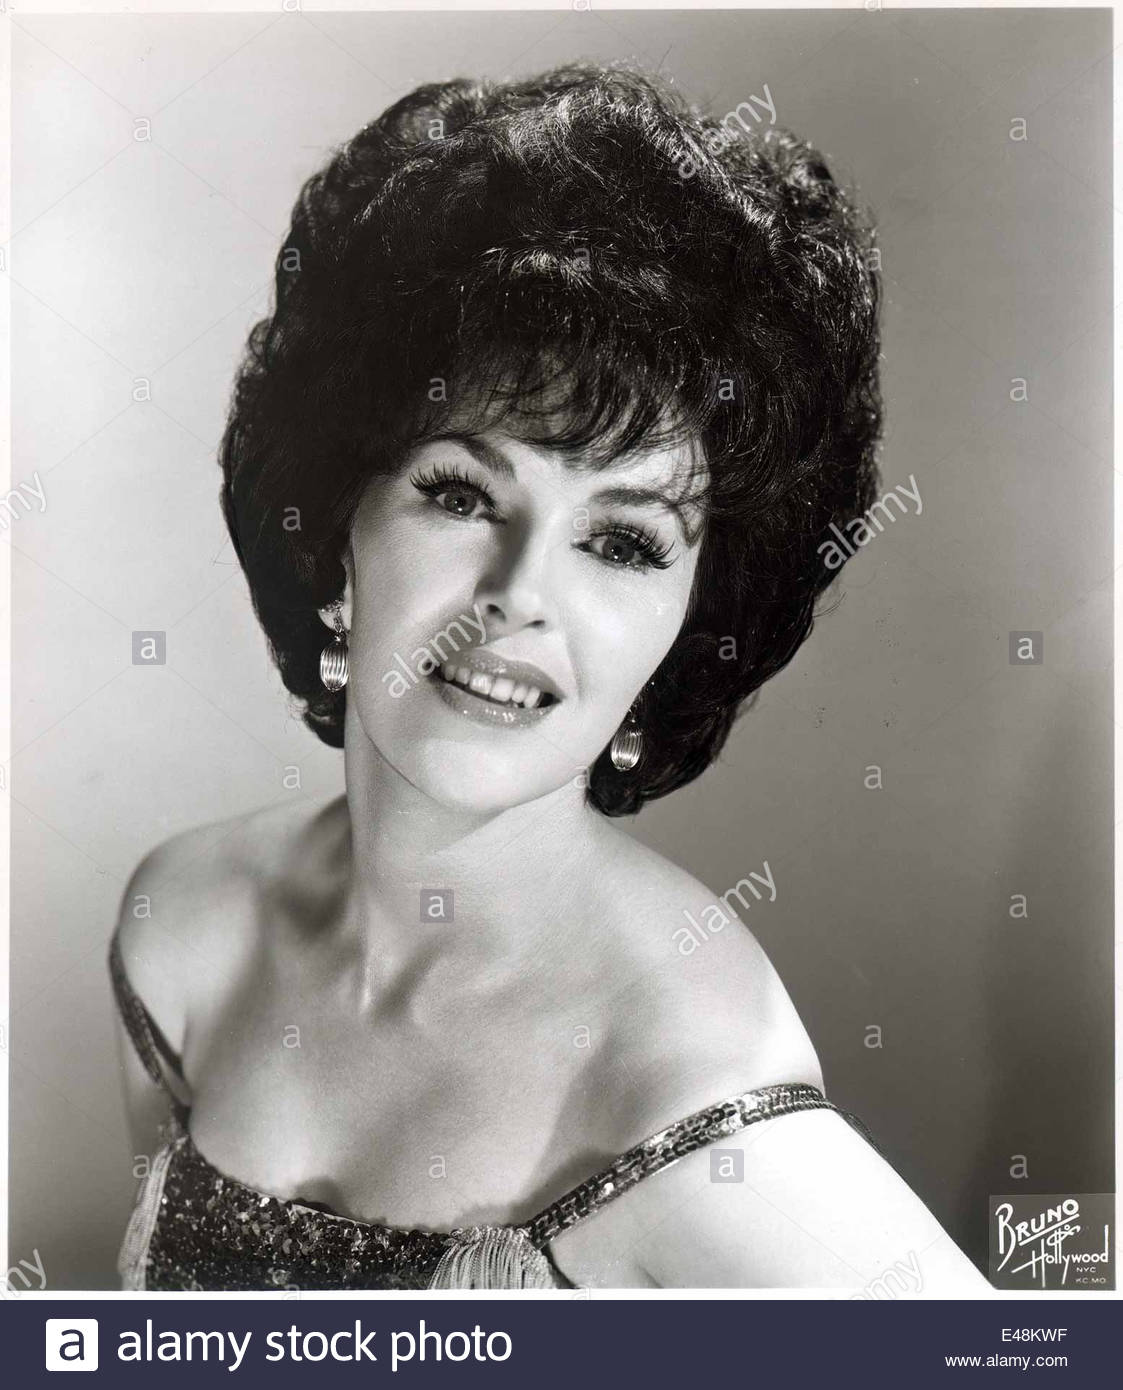 Wanda Jackson is an American singer, songwriter from the ...